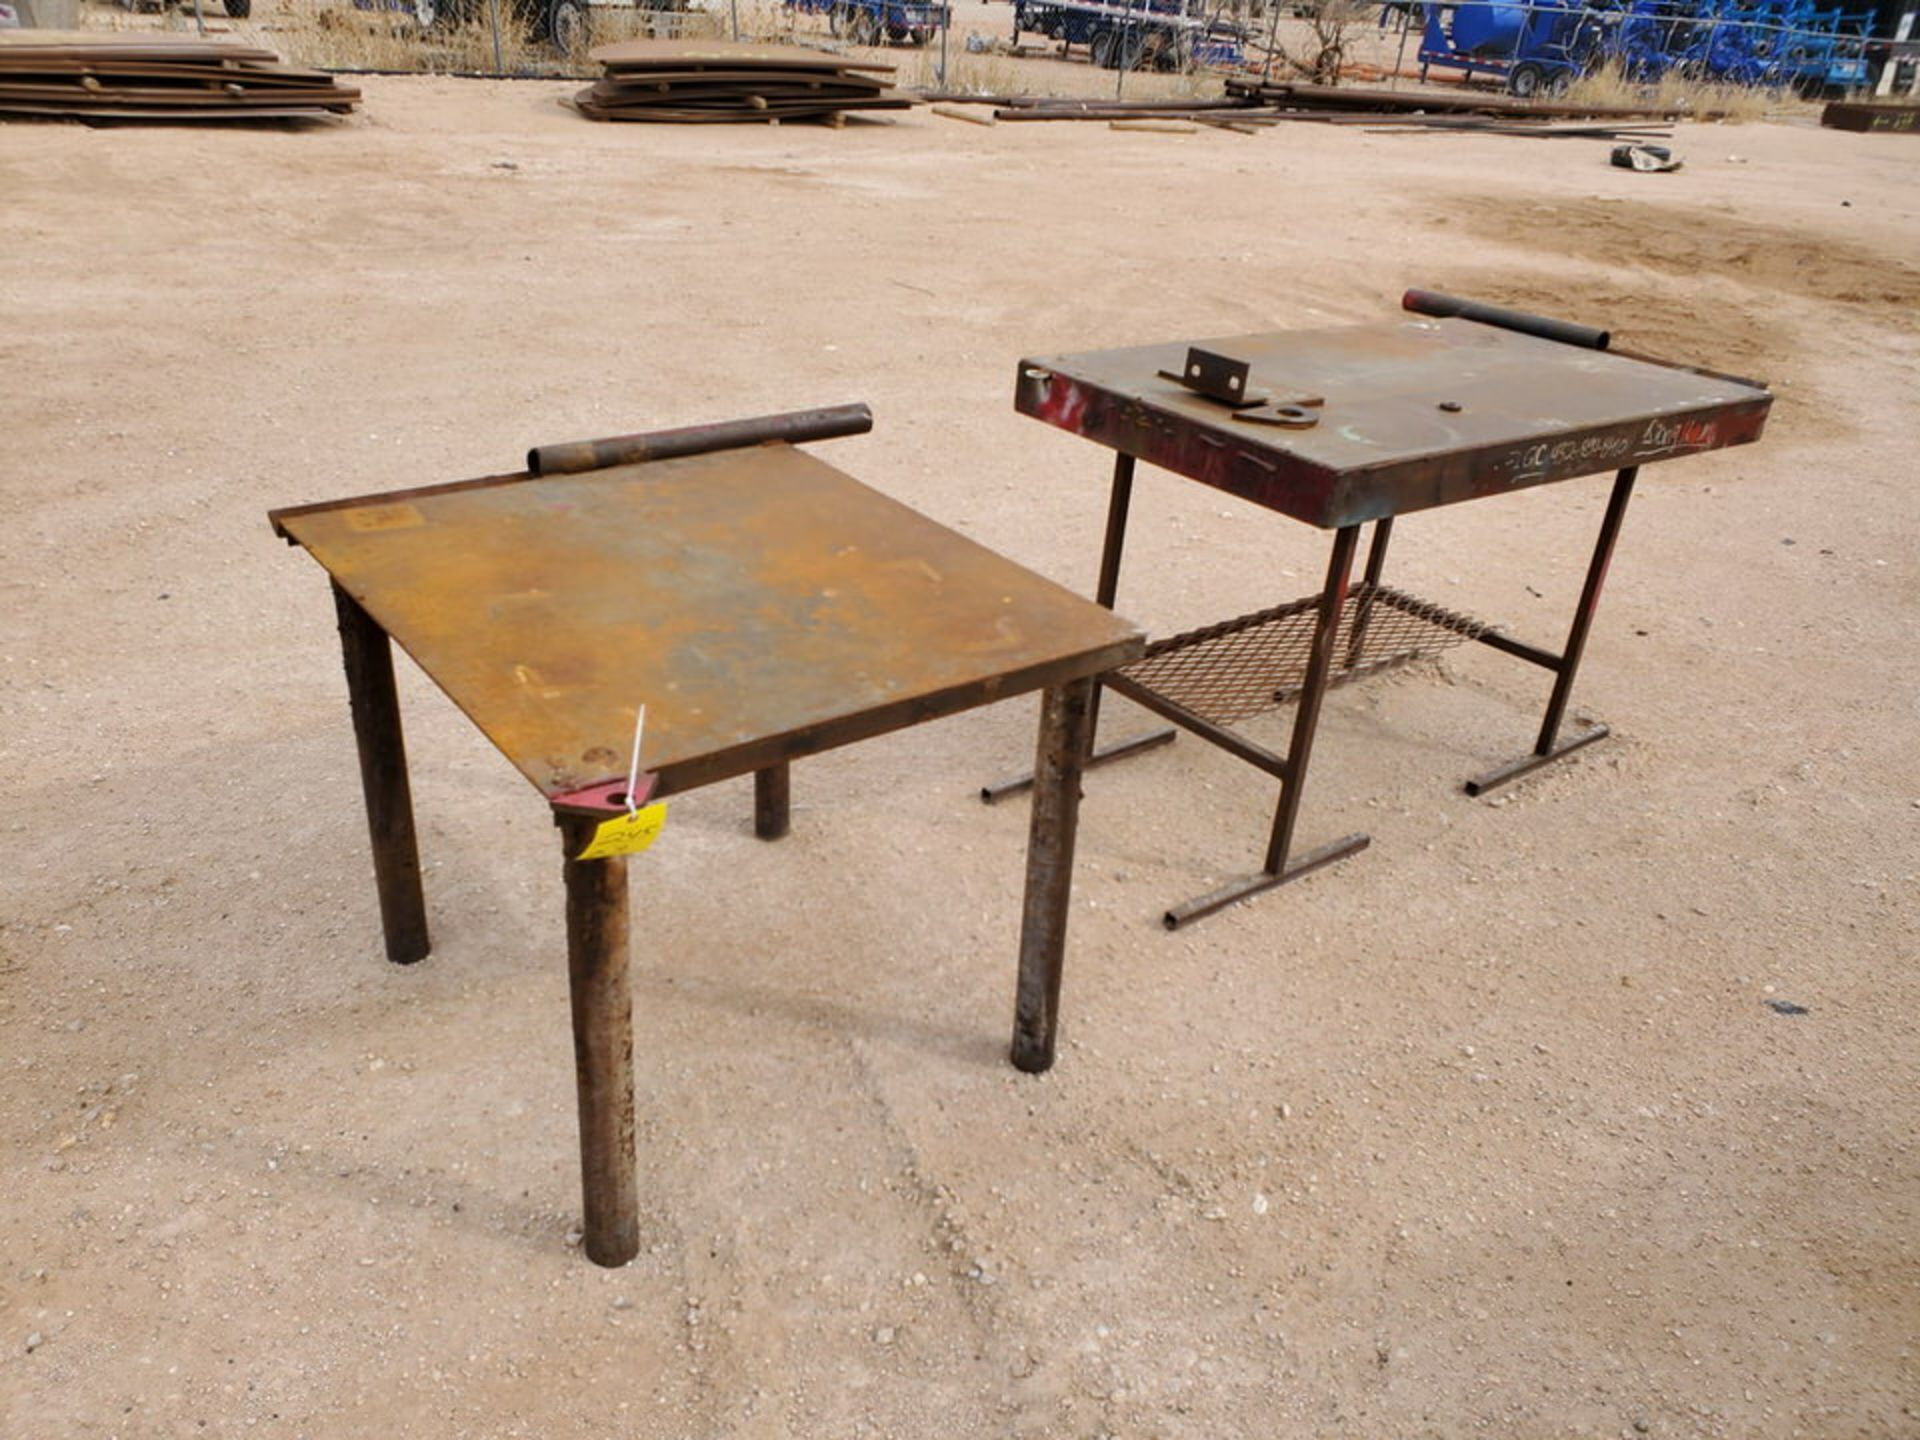 """(2) Stl Welding Tables (1) 36"""" x 43"""" x 30"""", (1) 60"""" x 29"""" 36"""" - Image 6 of 6"""